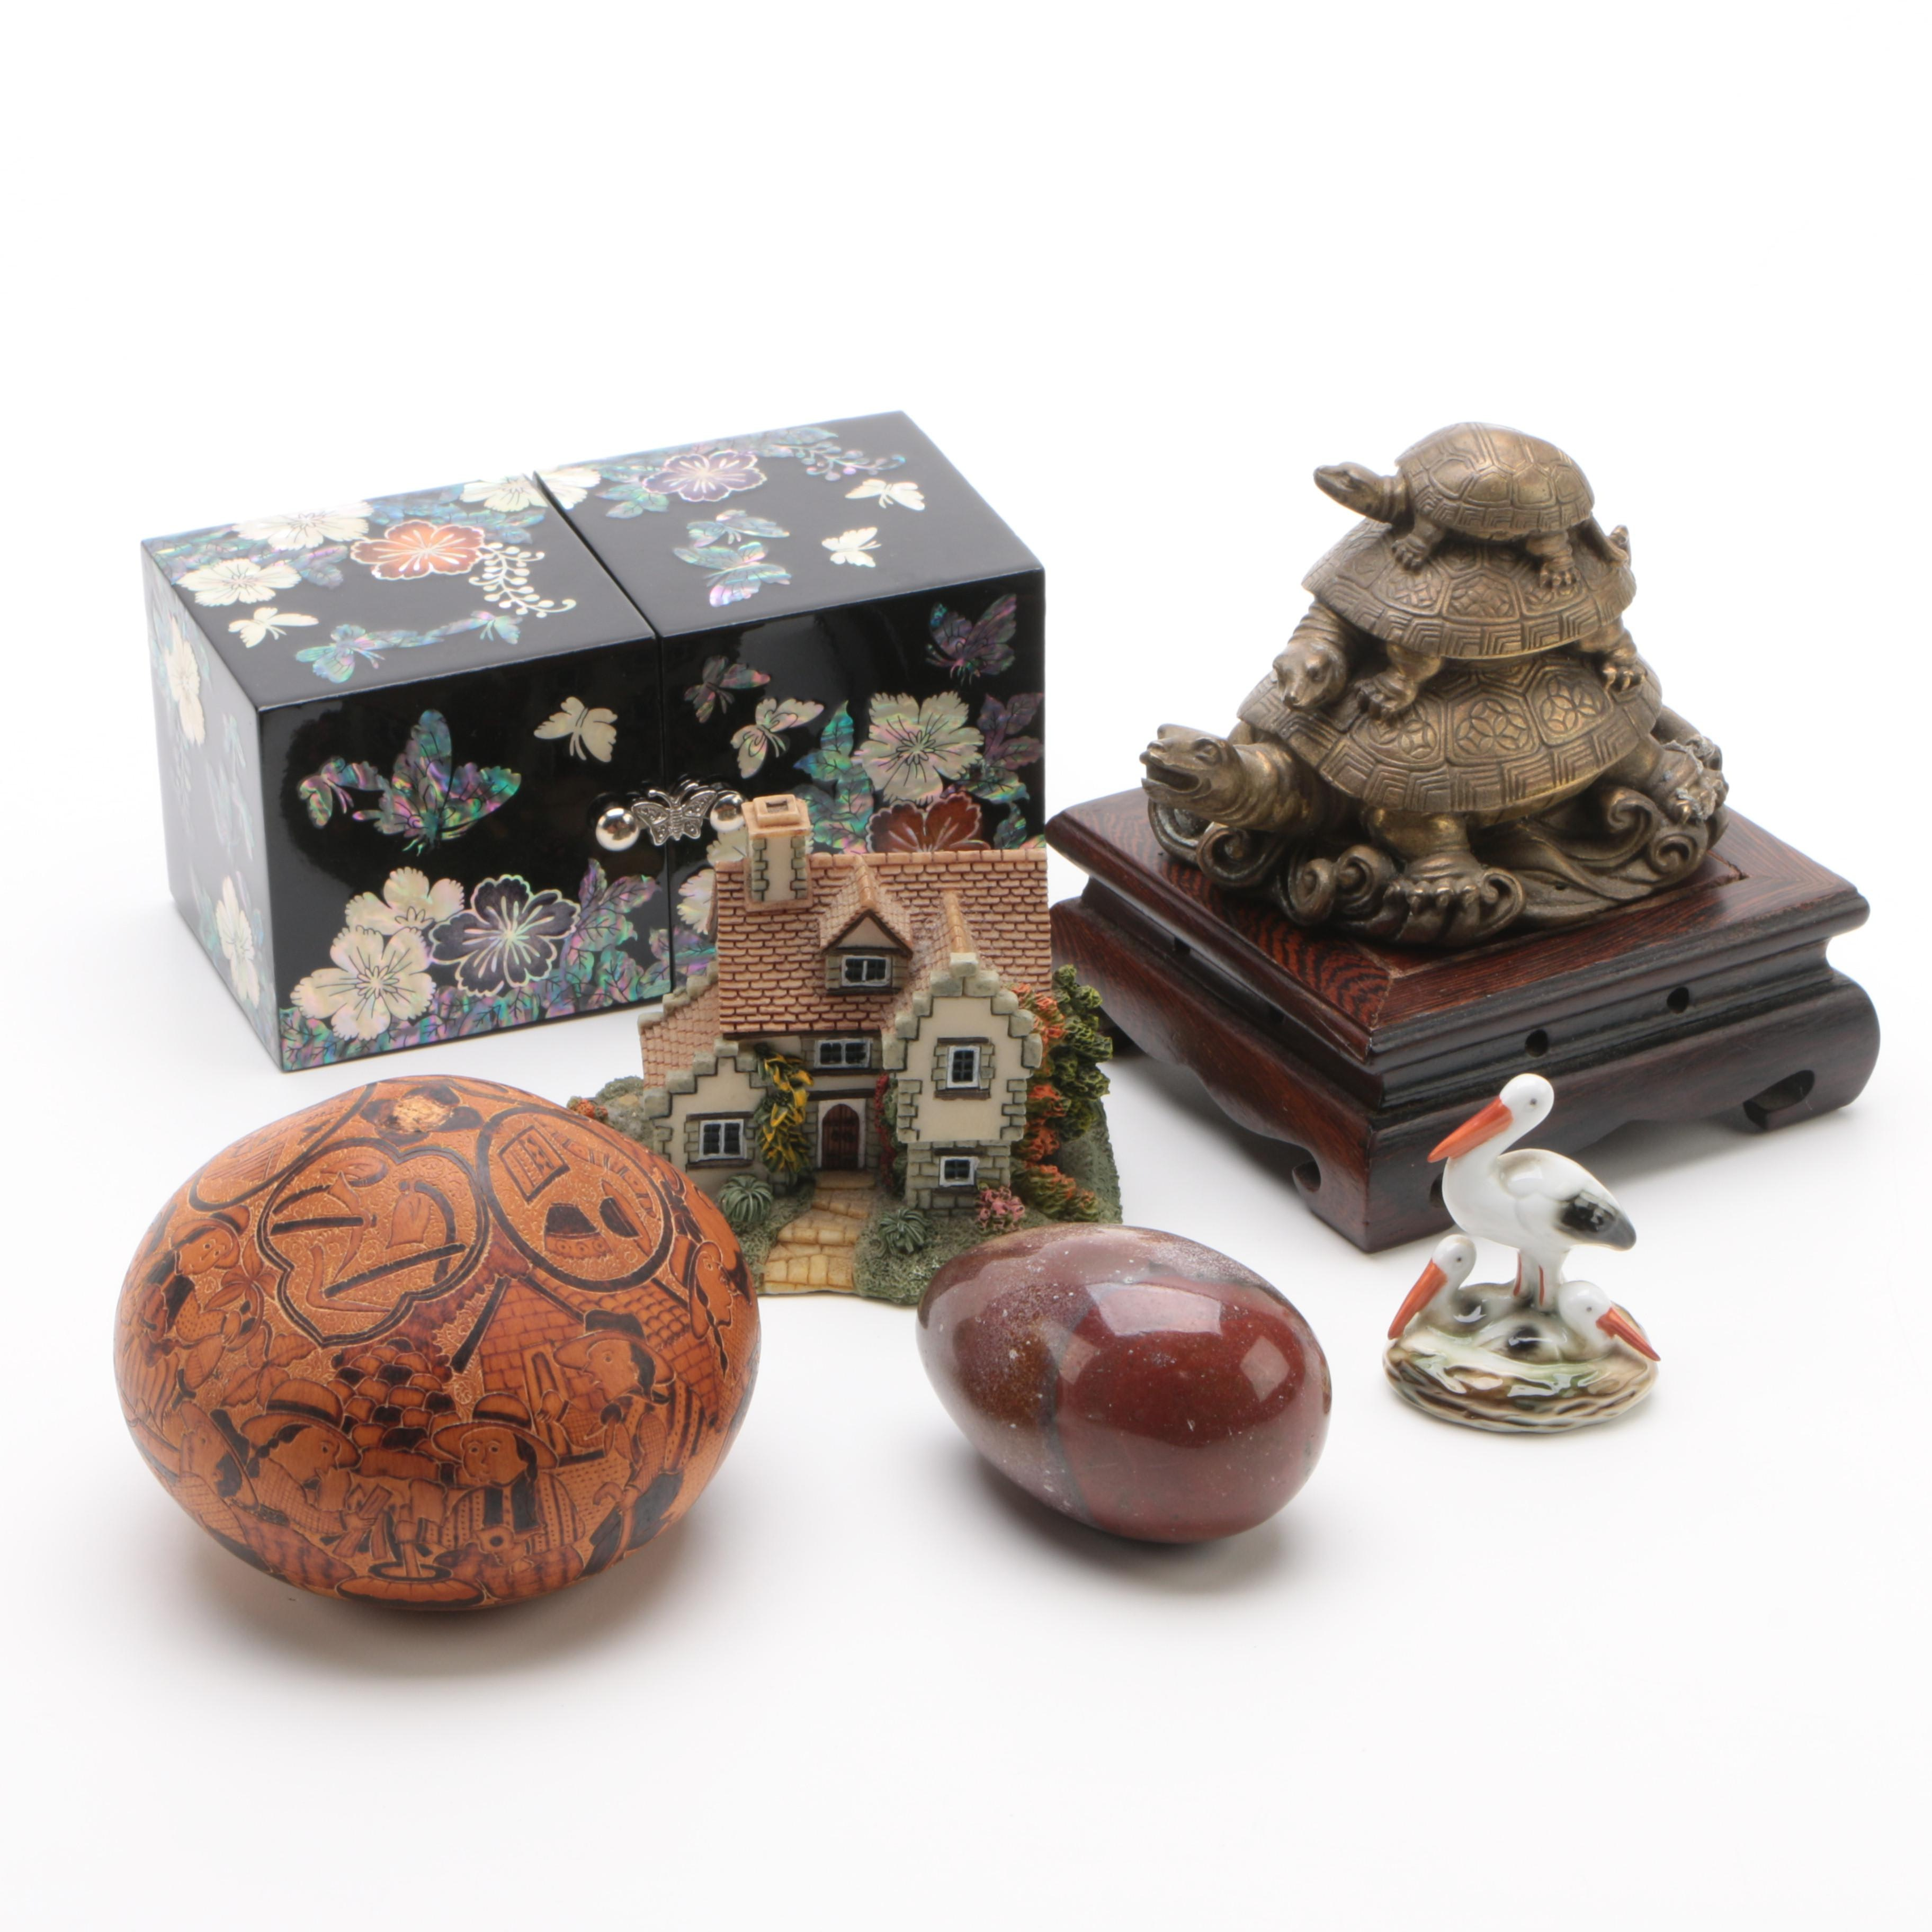 Etched Pictorial Gourd, Inlaid Lacquered Box, Carved Jasper Egg, and Figurines